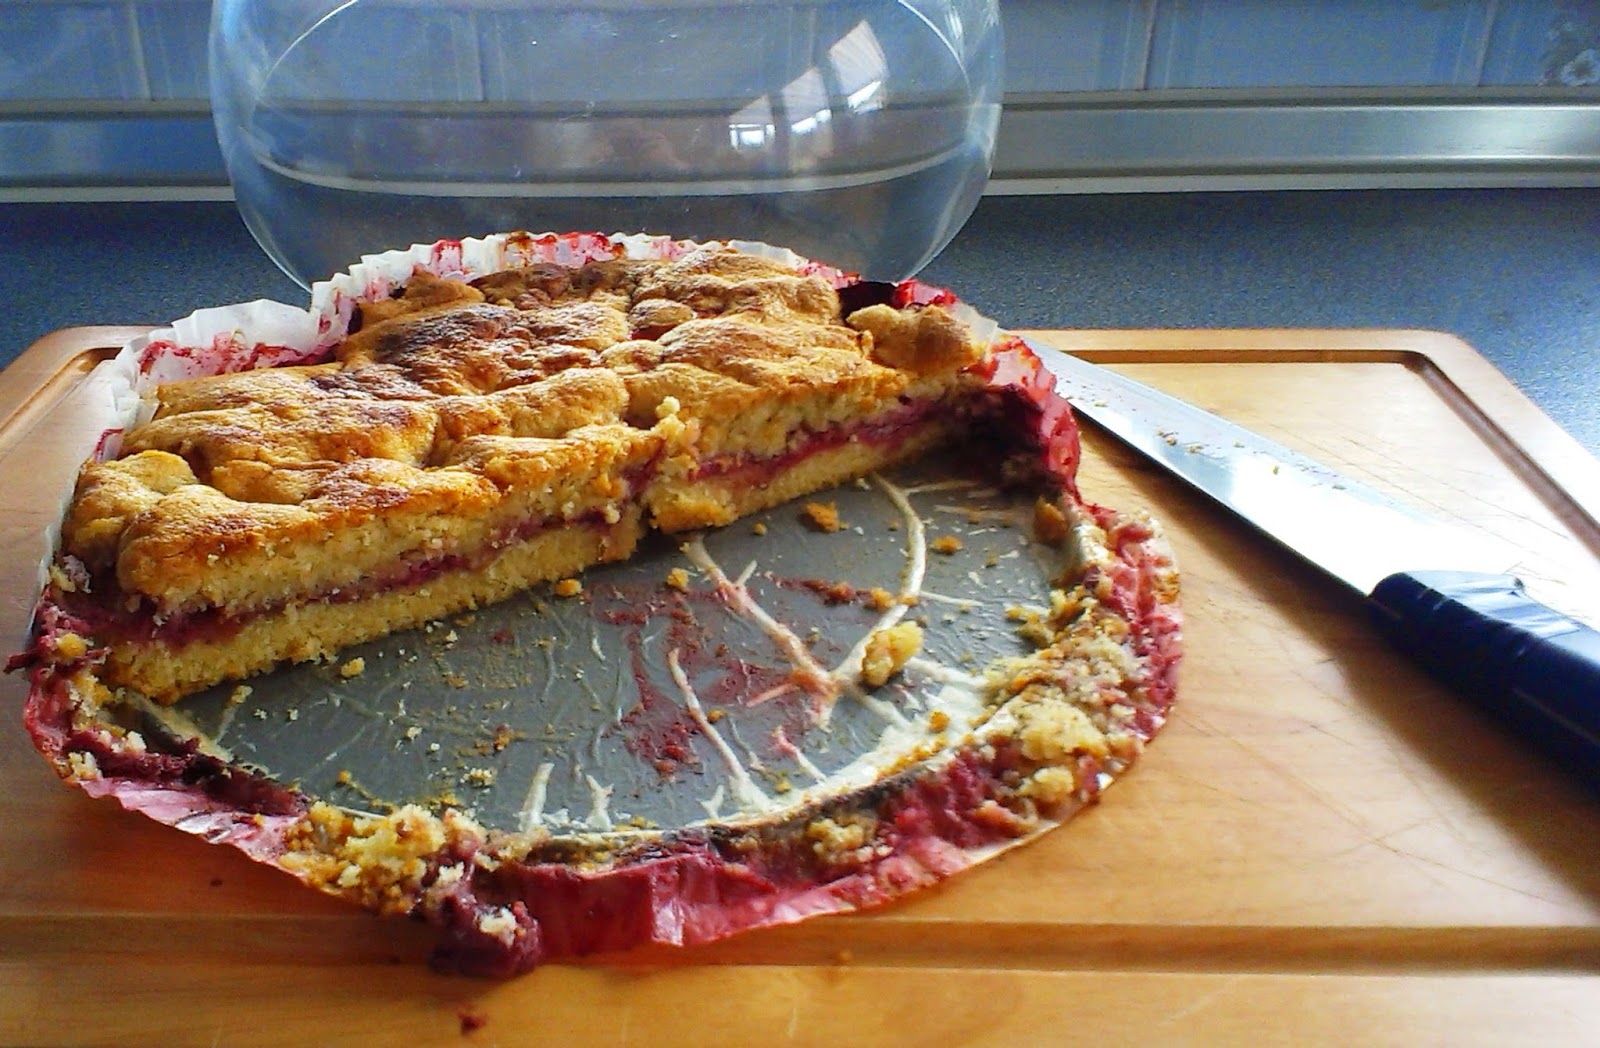 Strawberry and Cinnamon Torte